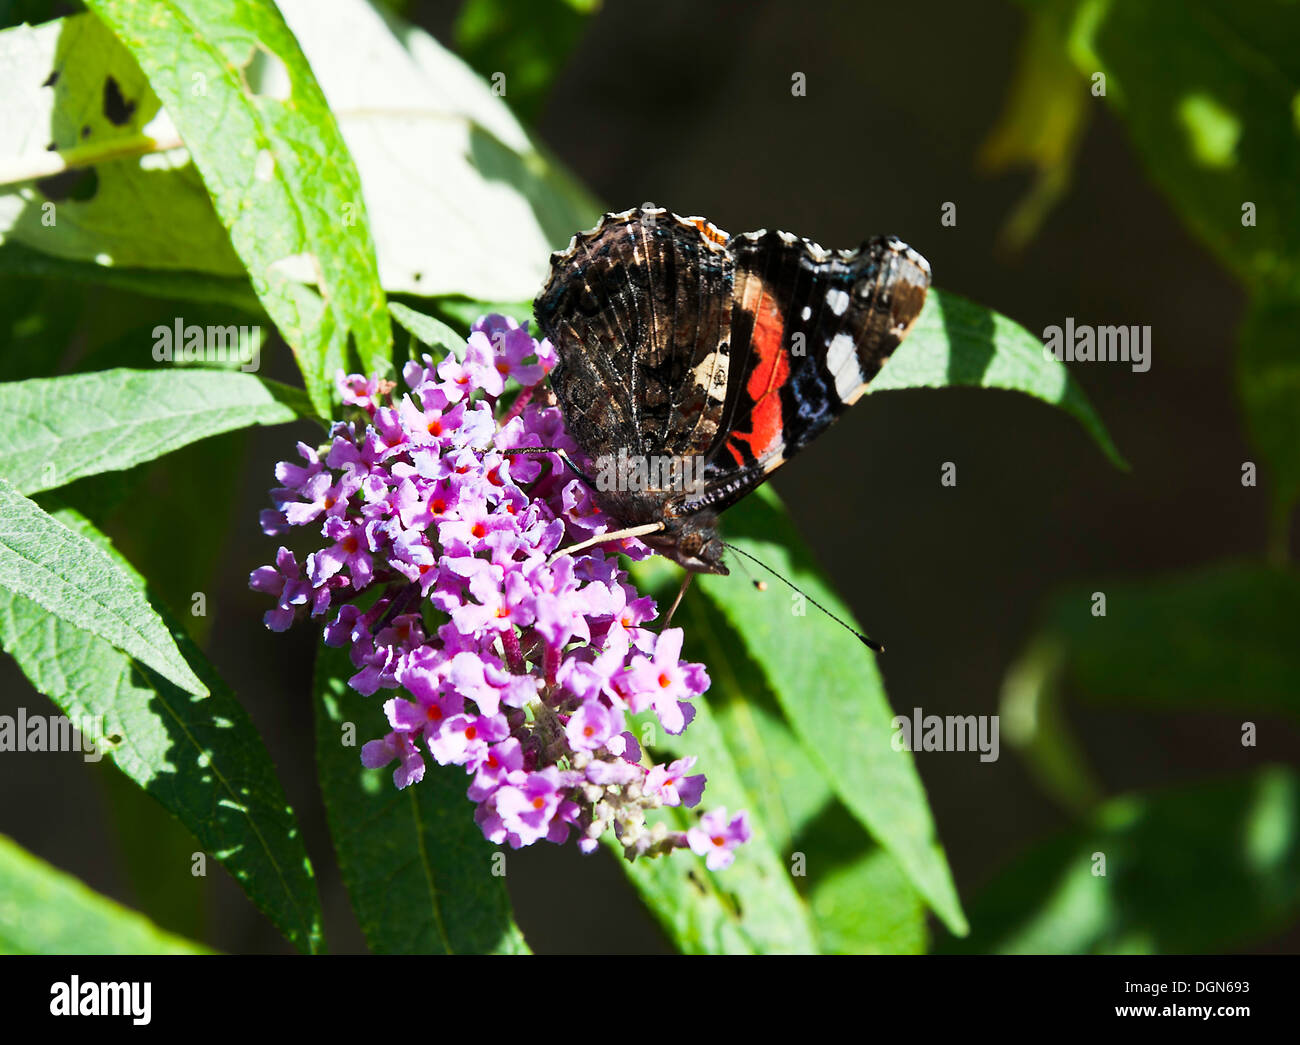 Red Admiral Butterfly Feeding on Nectar on a Buddleja Flower in a Cheshire Garden England United Kingdom UK - Stock Image